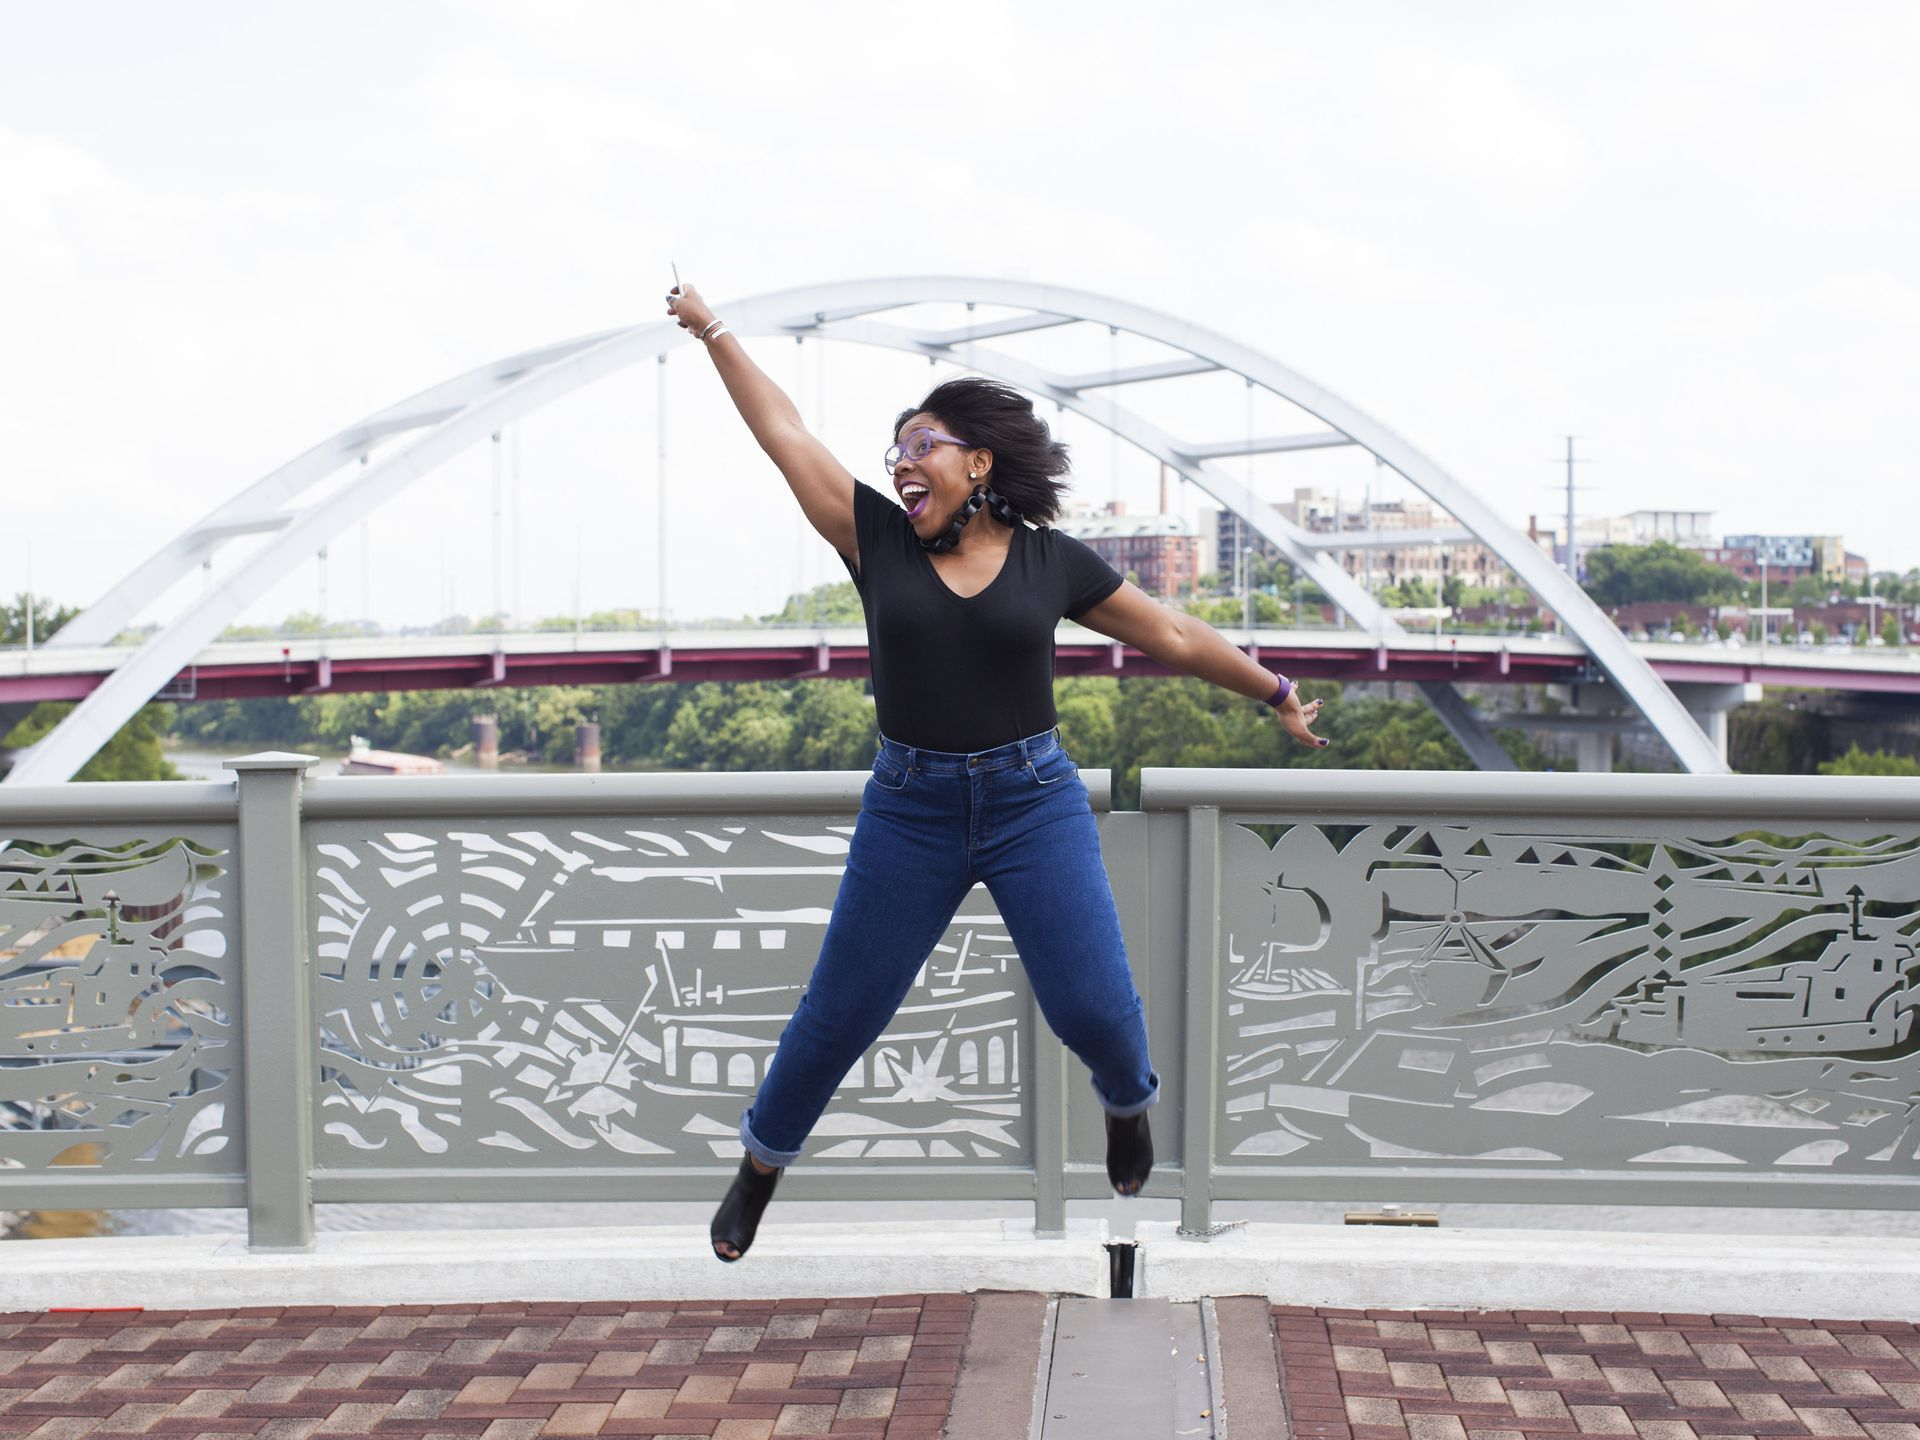 {Tennessean - Things to Do: Nashville's Favorite Selfie Spots} - Kia Jarmon reaches for the sky on this historic landmark that serves as a connector of Downtown Nashville and the East Nashville neighborhoods.